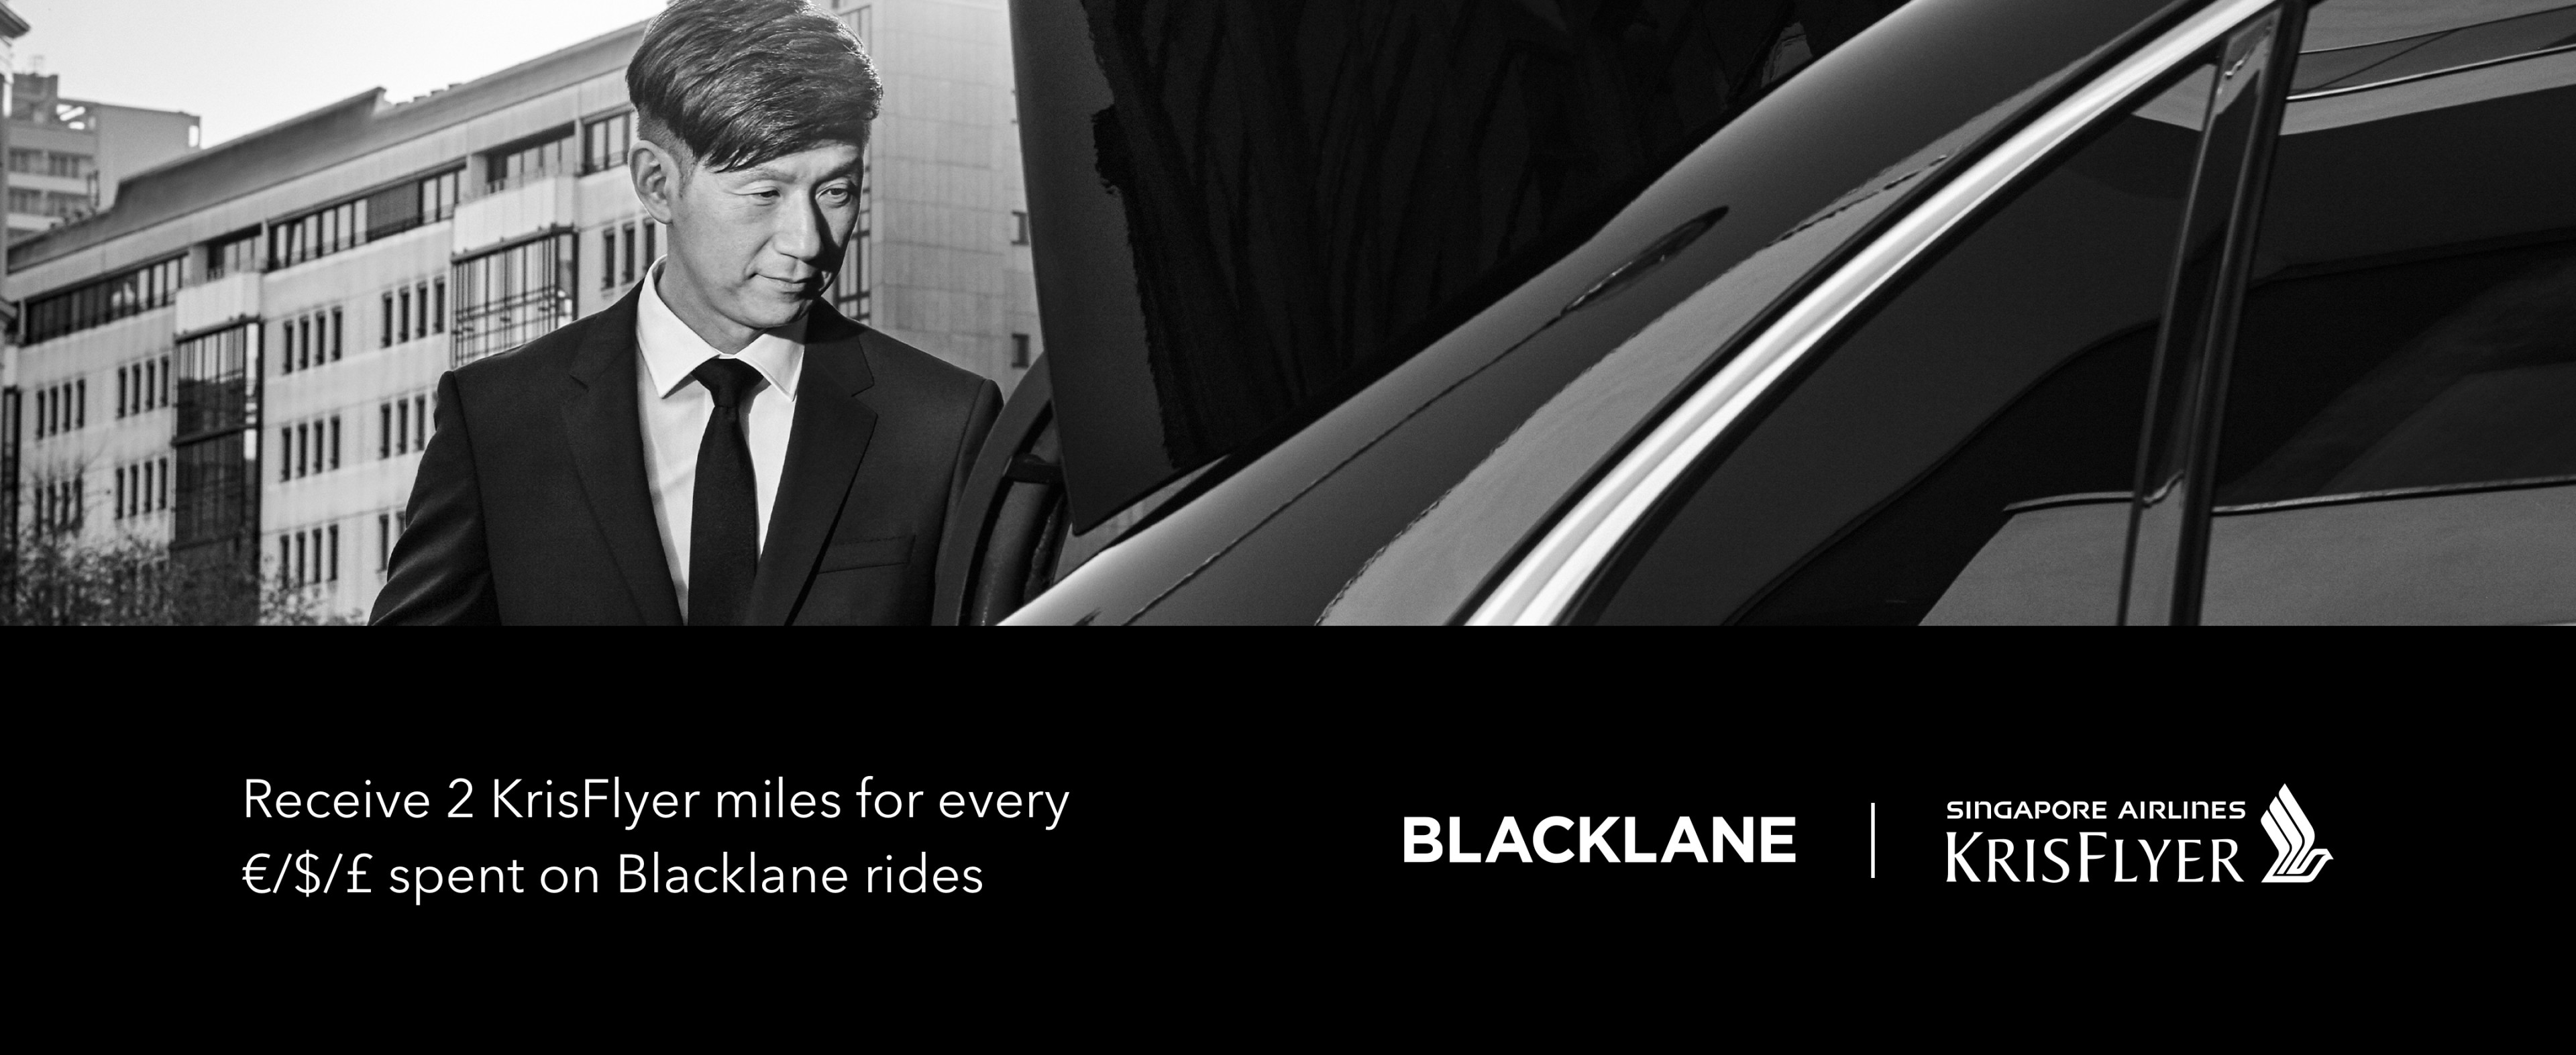 Receive 2 KrisFlyer miles for every dollar spent on Blacklane rides courtesy of Singapore Airlines.